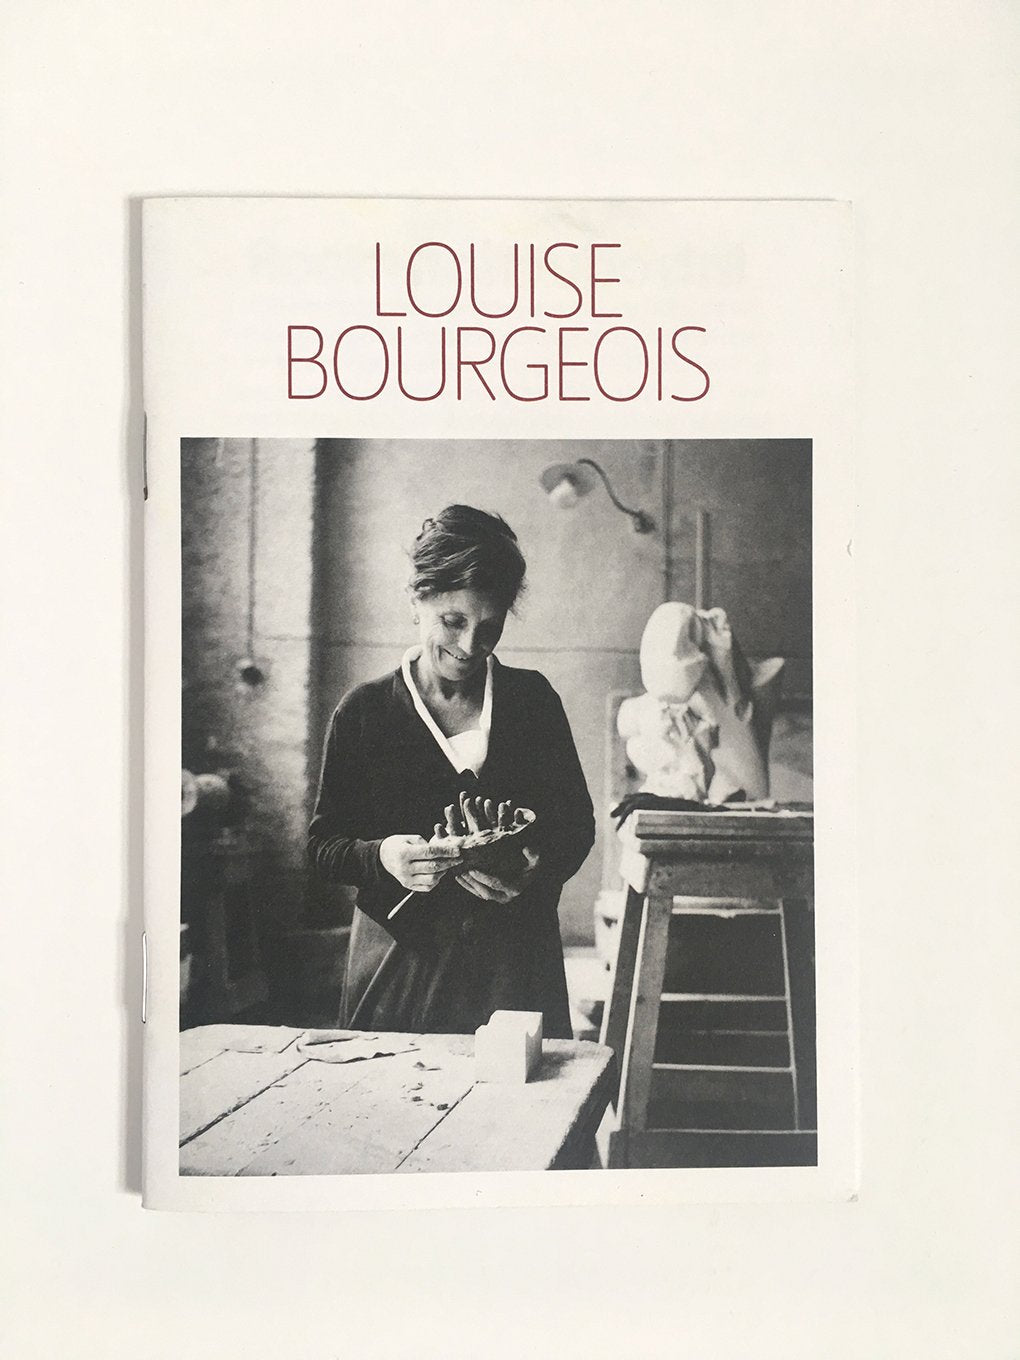 Louise Bourgeois at Tate Modern - Exhibition guide and history